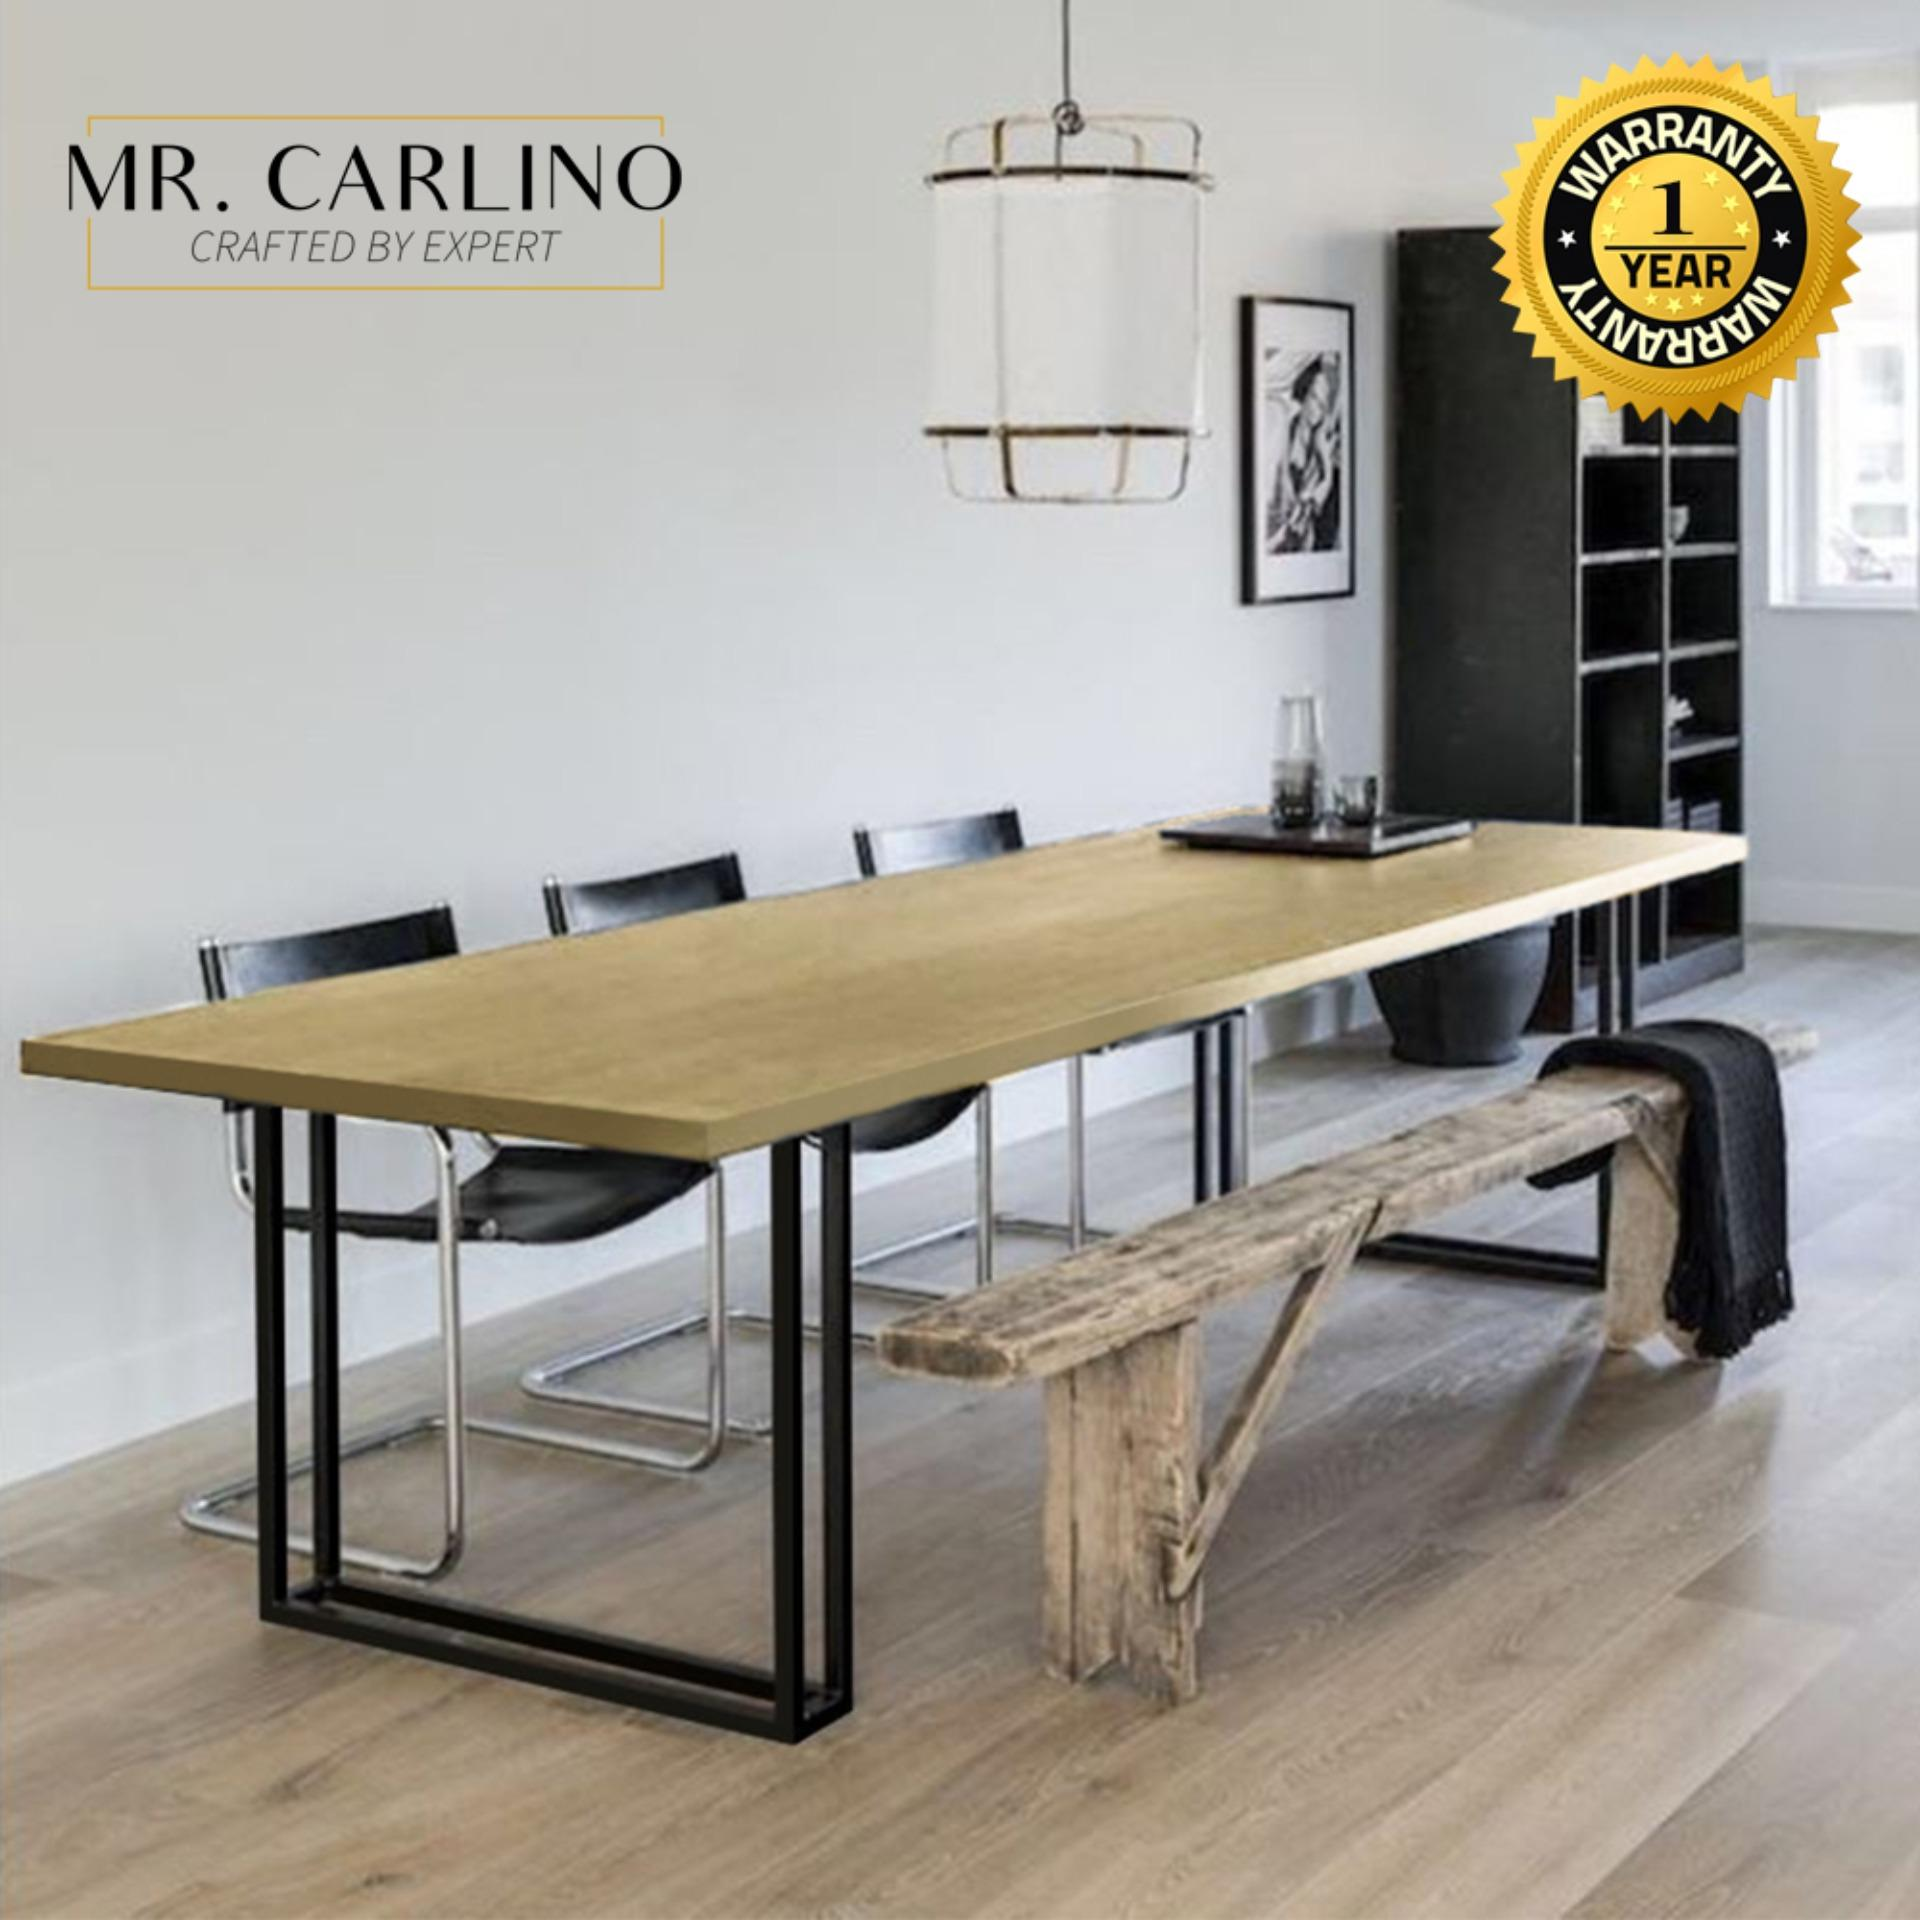 Finney [200 X 90 Cm] Retro Feels Rubber Wood 2.5 Cm Thick Dining Table By Casa Muebles.